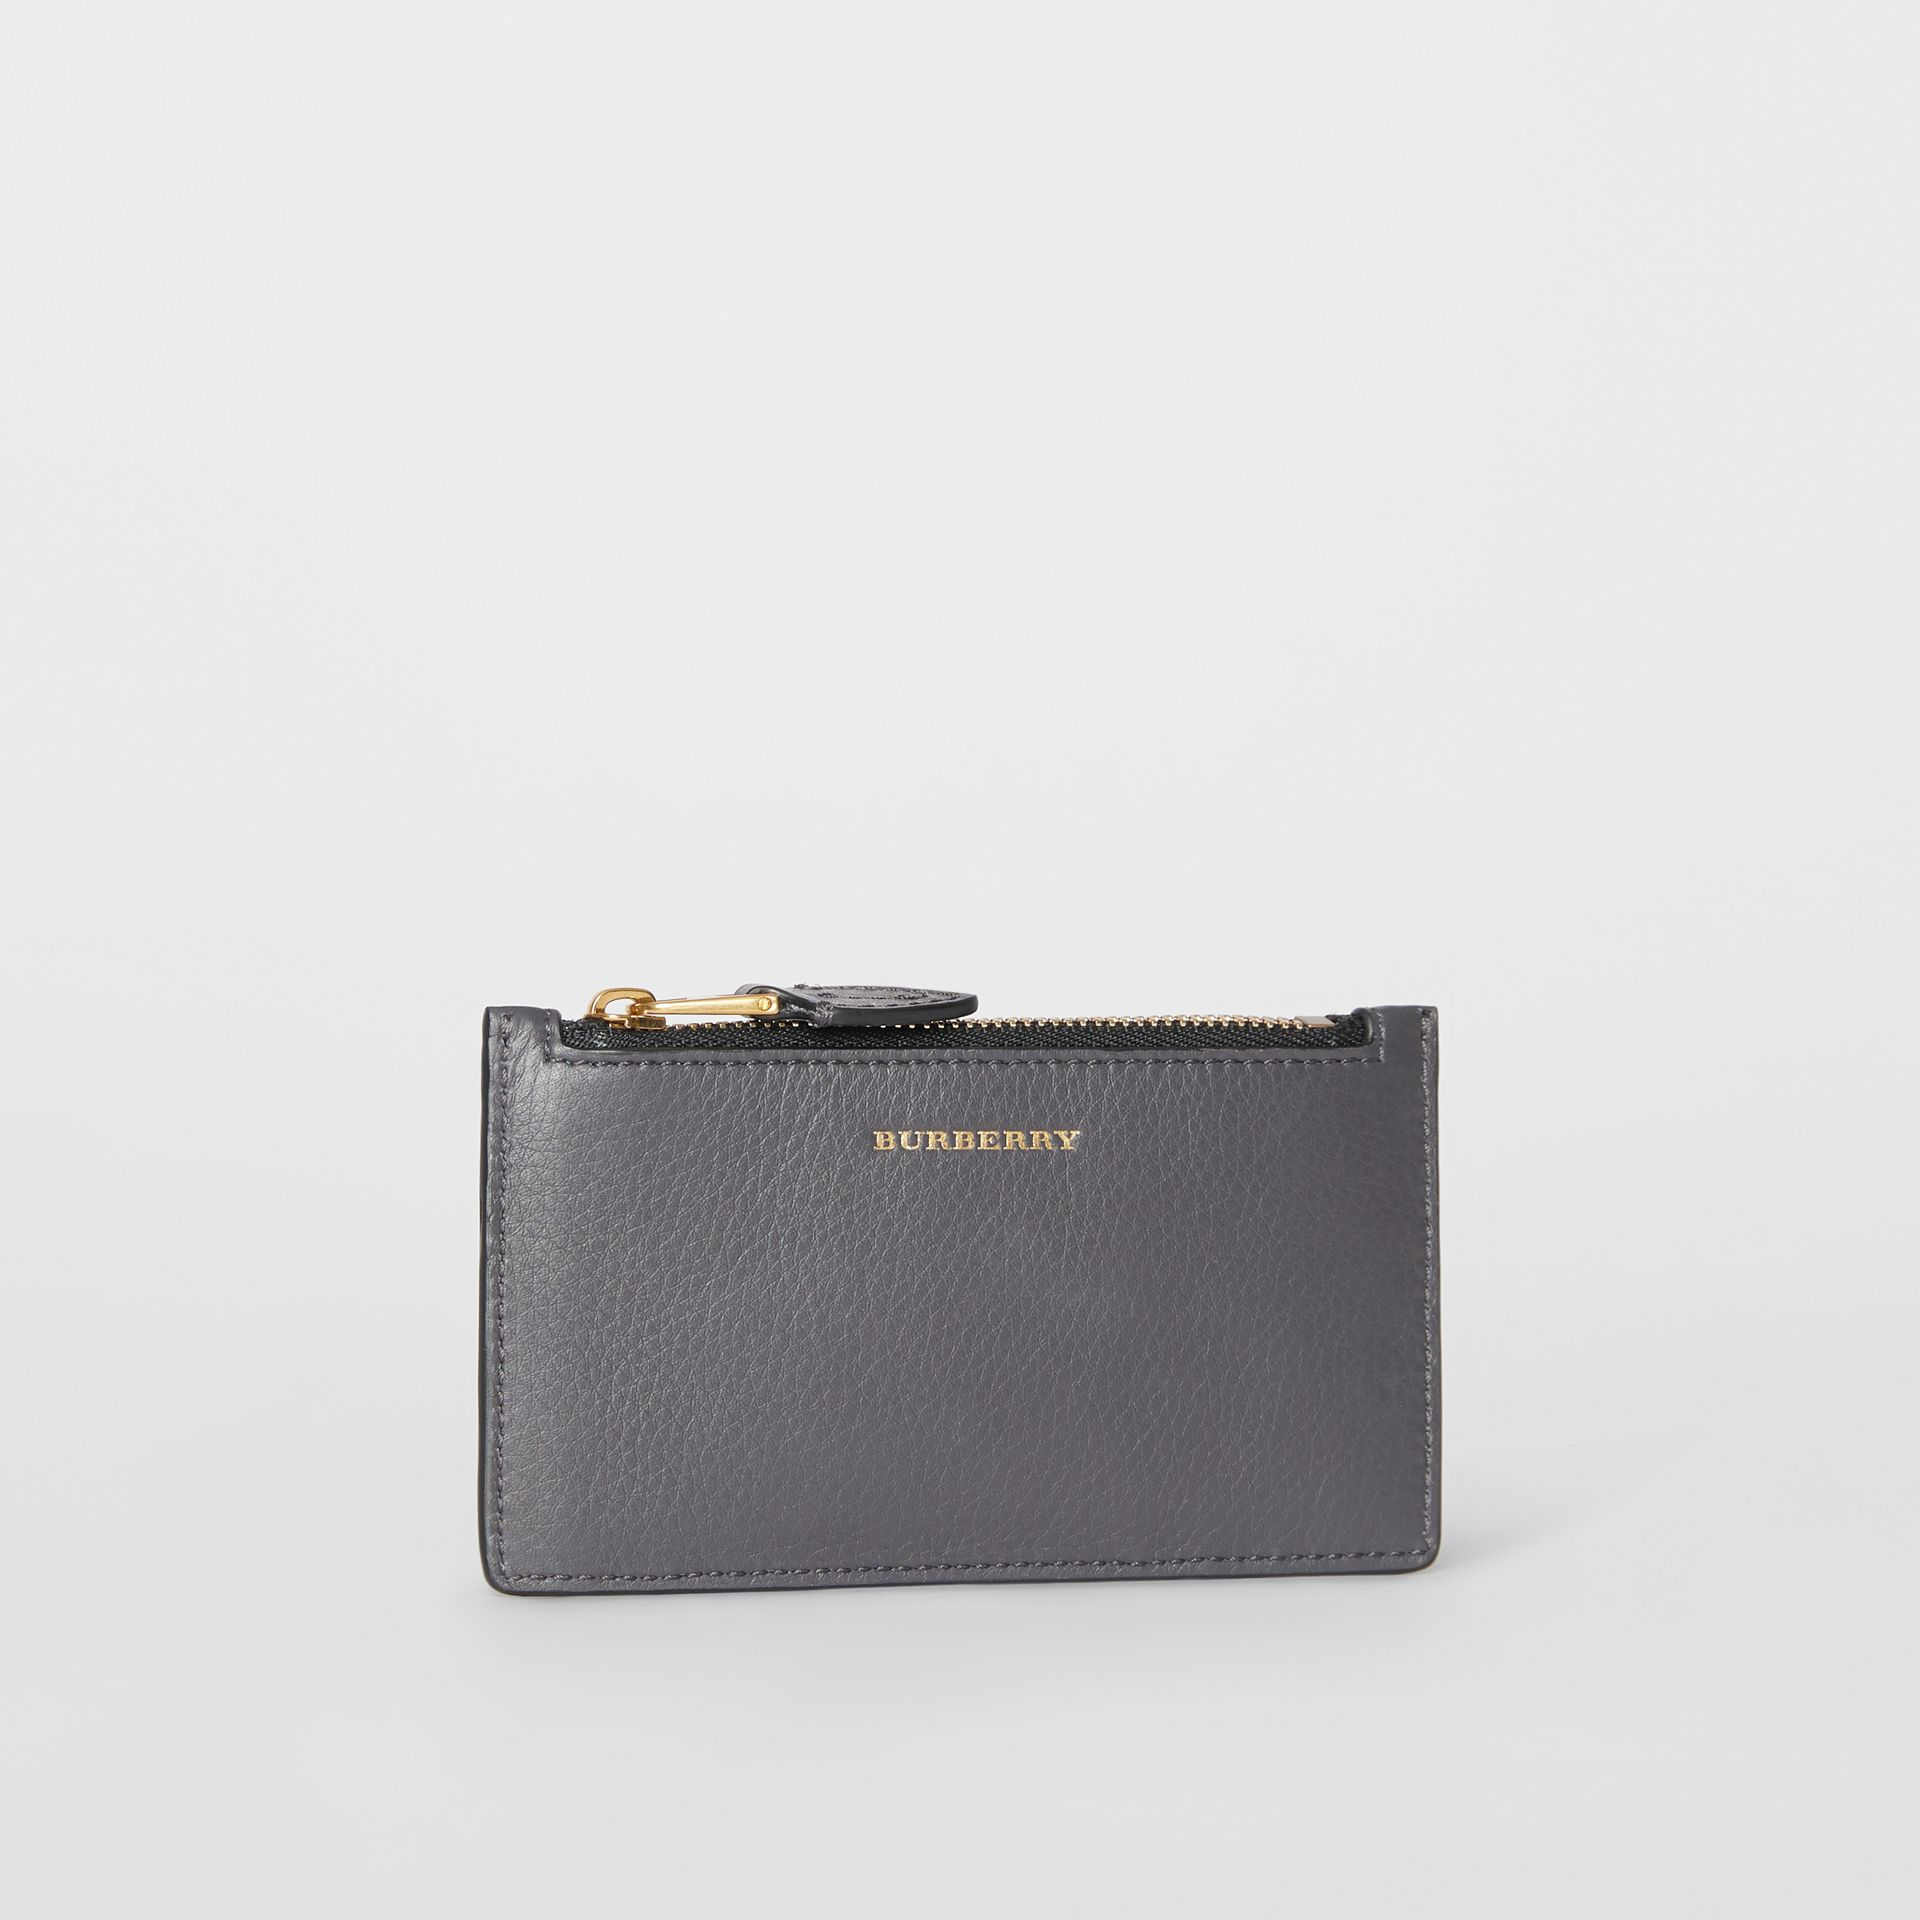 Two-tone Leather Card Case in Charcoal Grey - Women | Burberry Singapore - gallery image 4